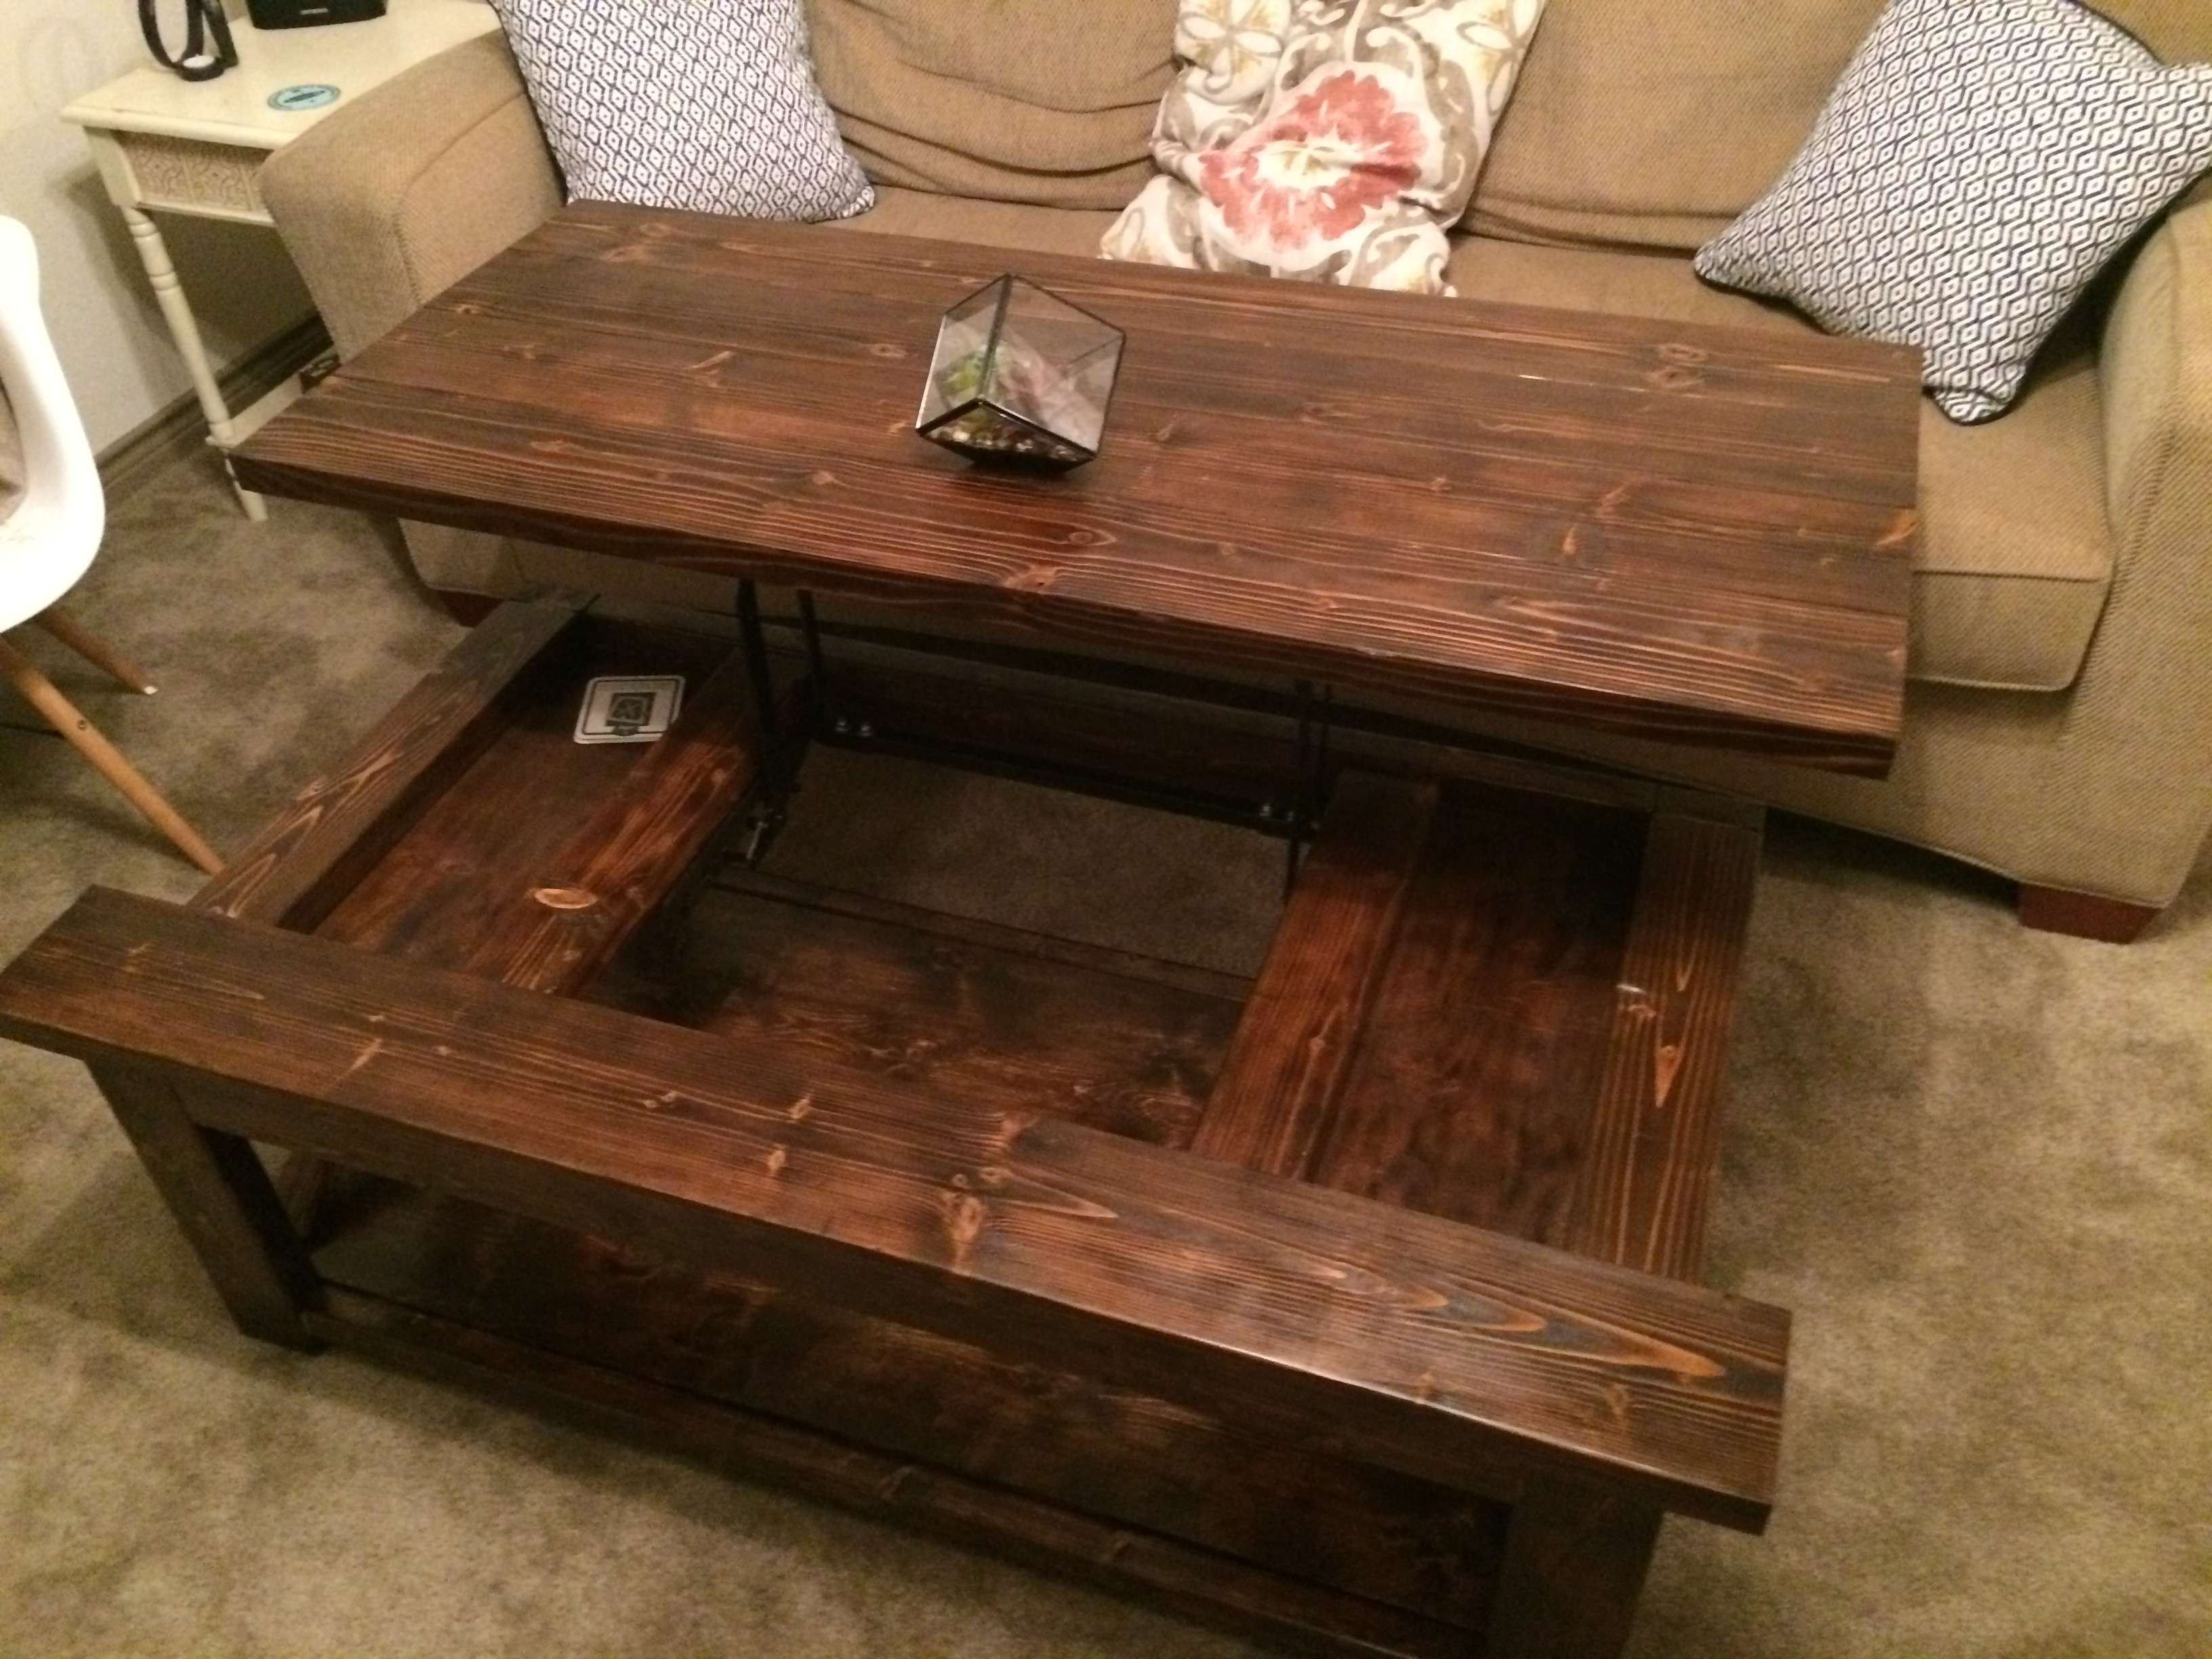 Diy Lift Top Coffee Table U2013 Rustic X Style U2013 Diy Projects (View 6 Of